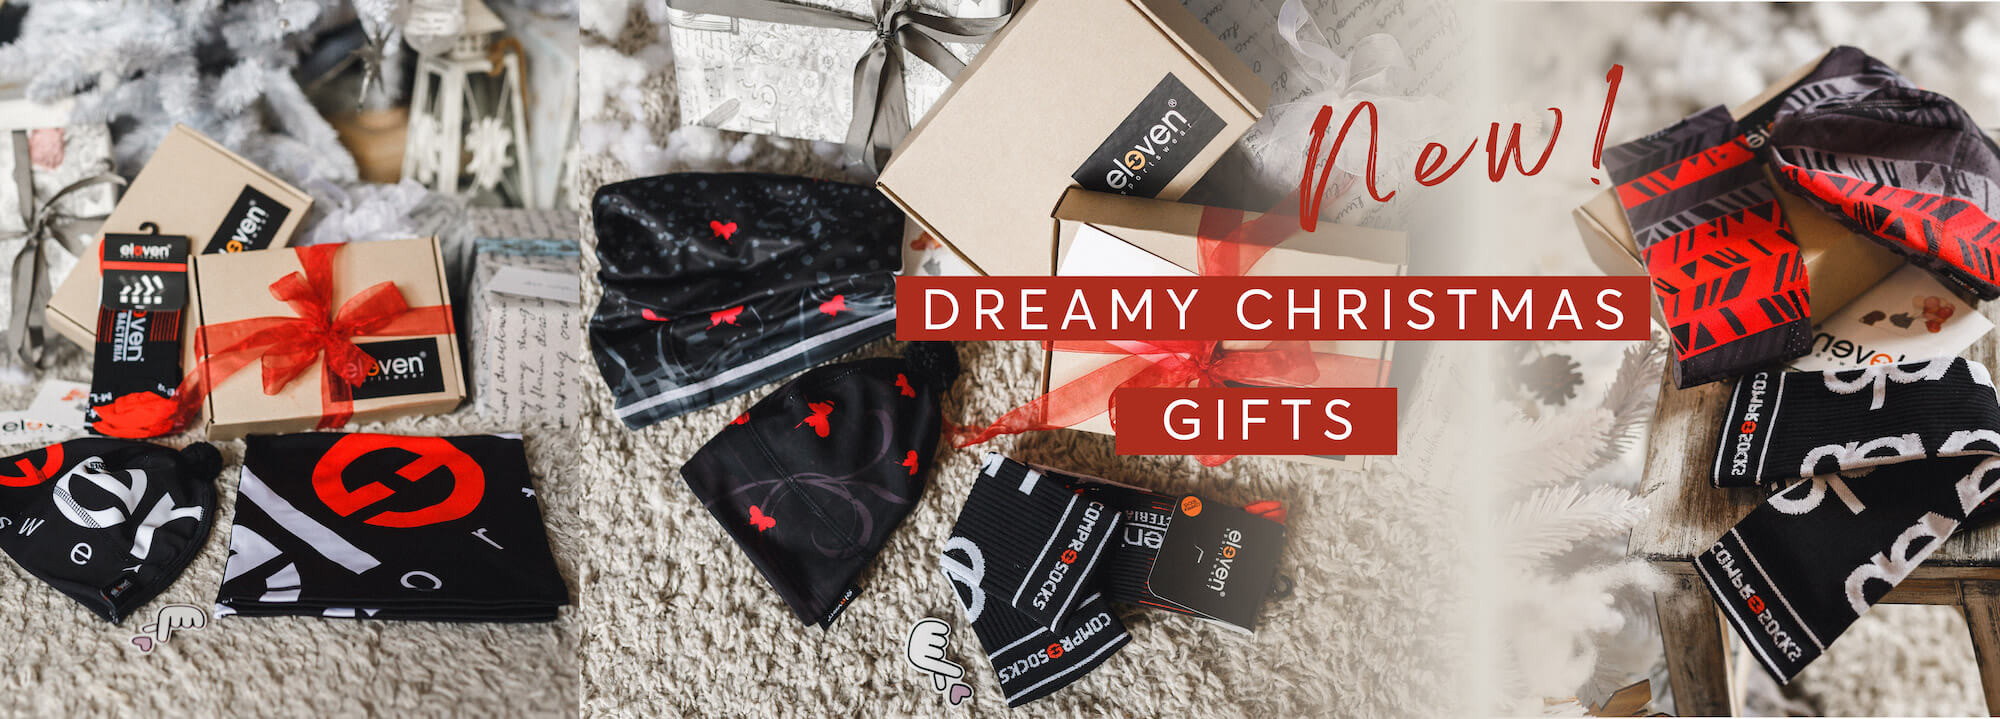 Dreamy Christmas gifts!